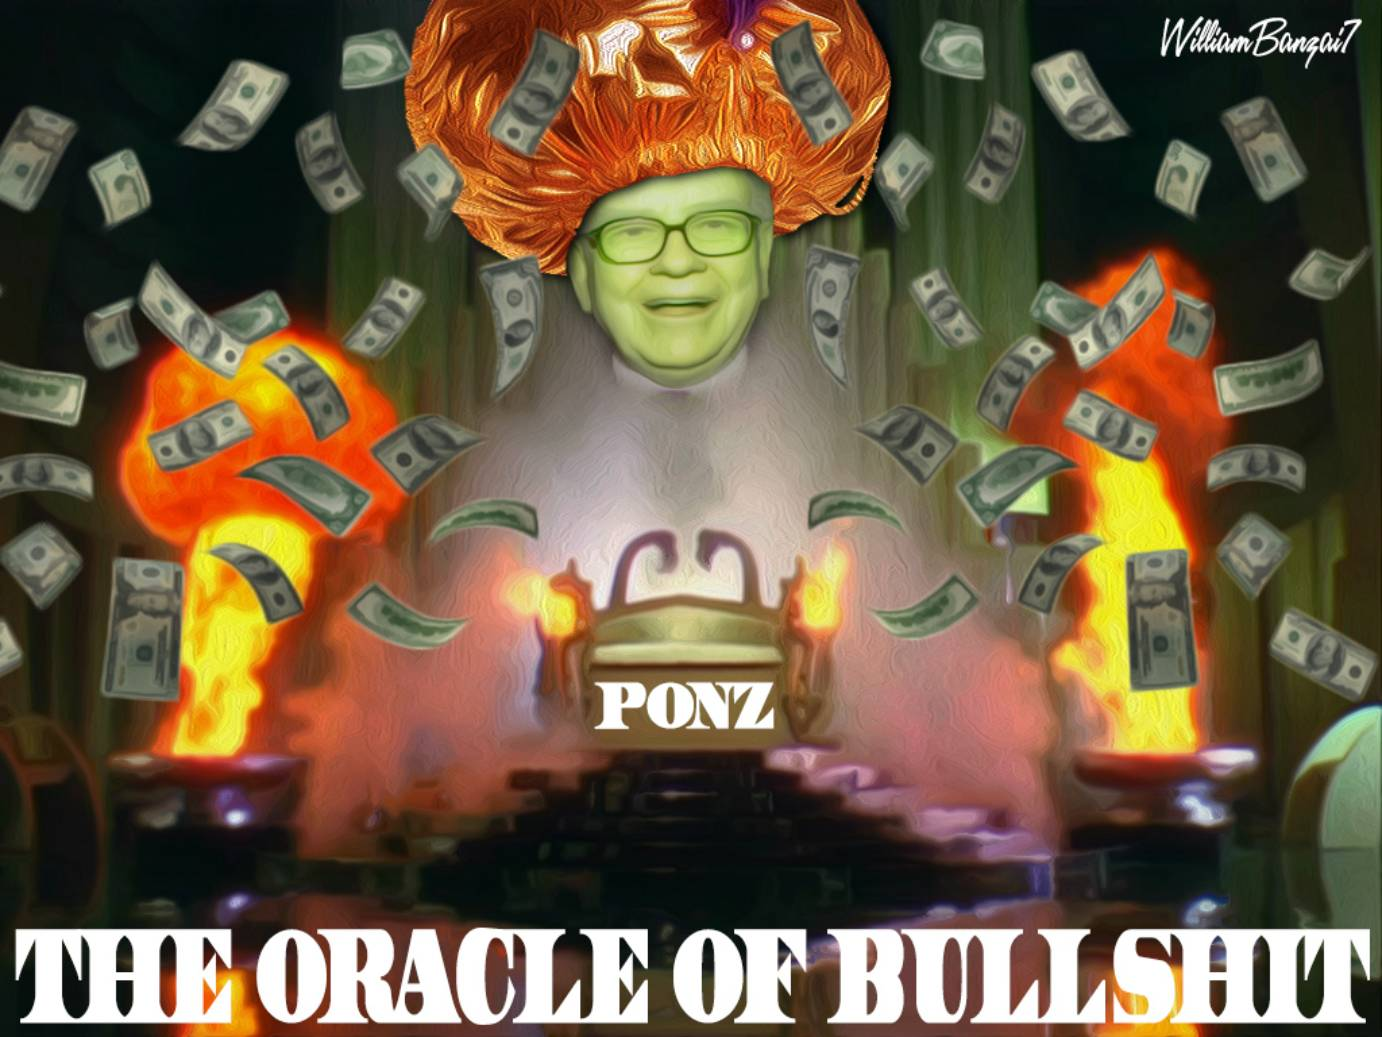 THE WIZARD OF PONZ (AKA THE ORACLE OF BULLSHIT)